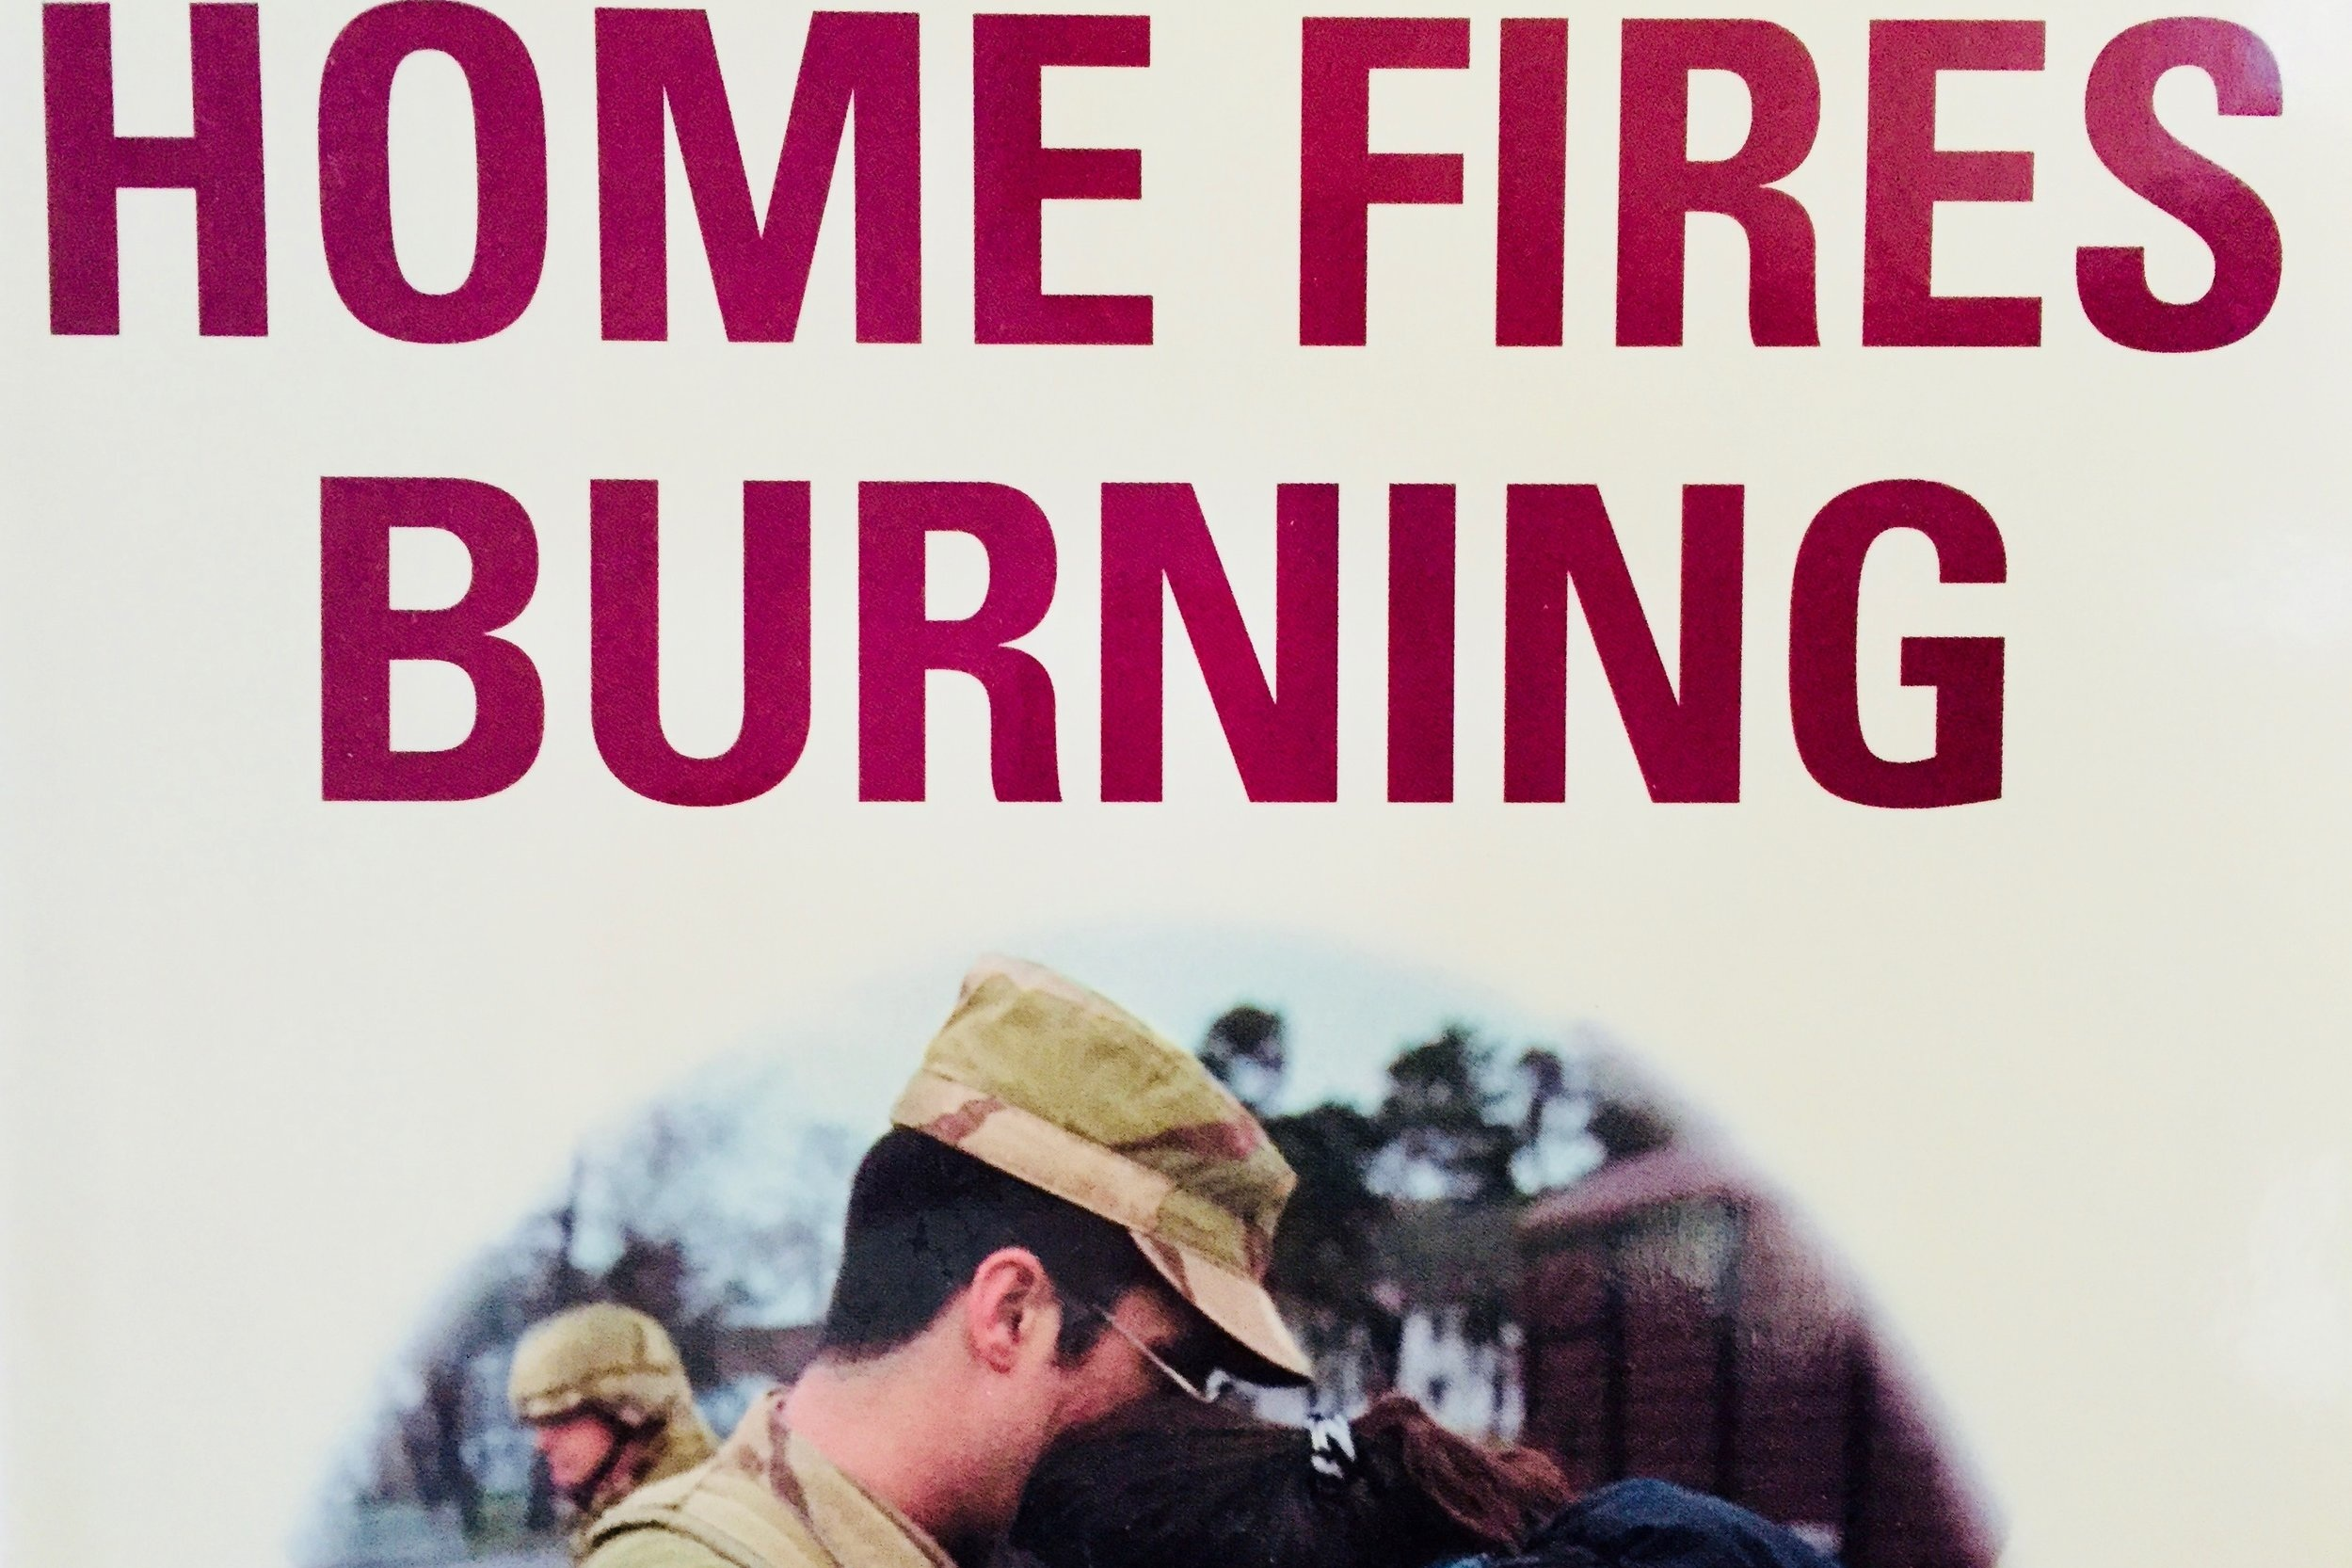 Home Fires Burning: Married to the Military—For Better or Worse  was published by Ballantine/Random House in 2005.